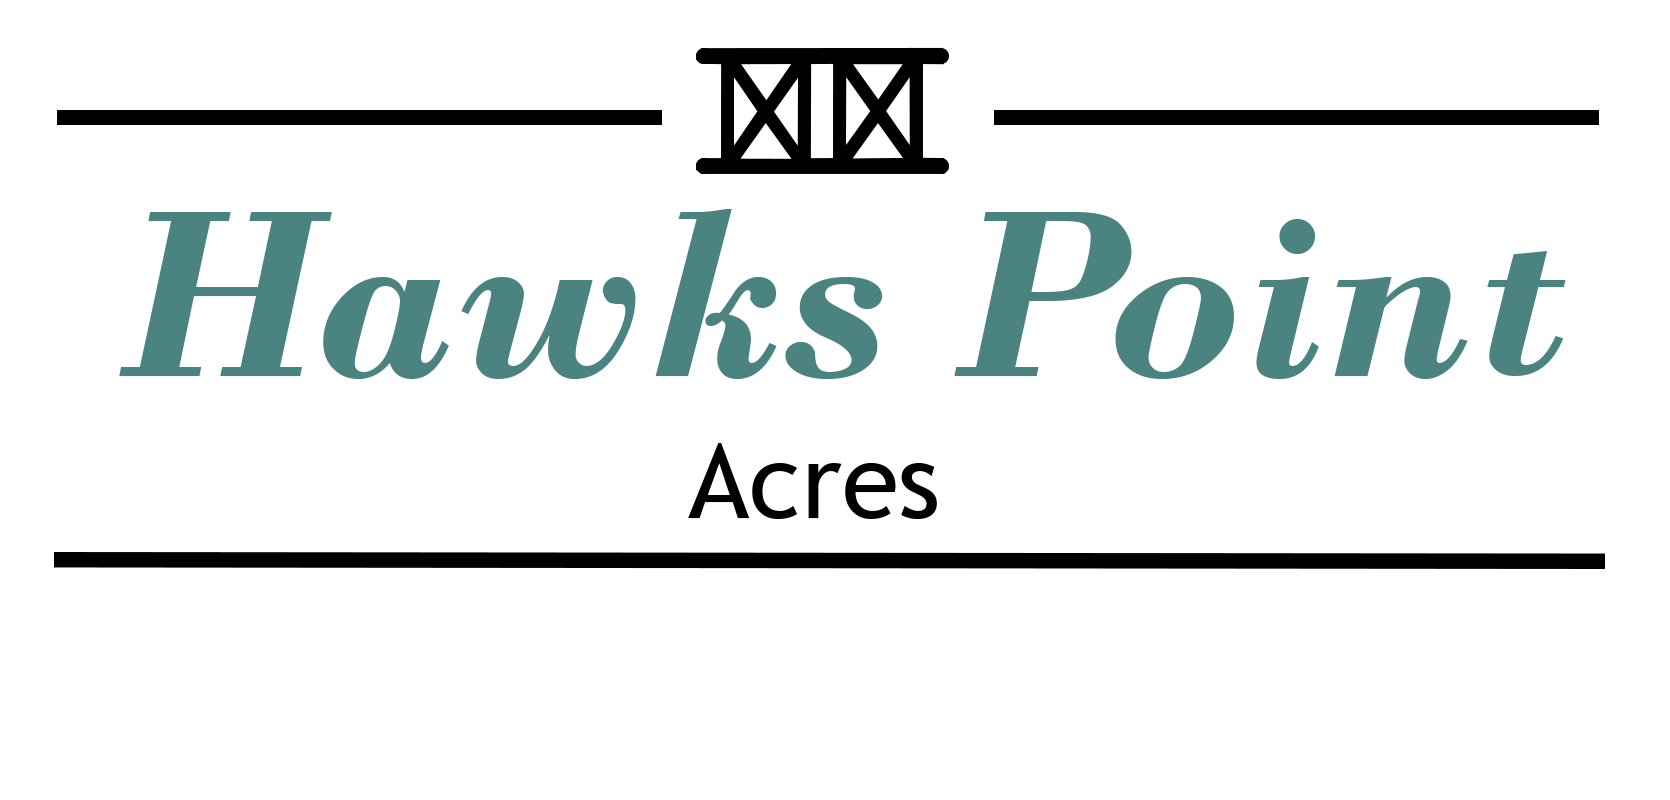 Hawks Point Acres White top